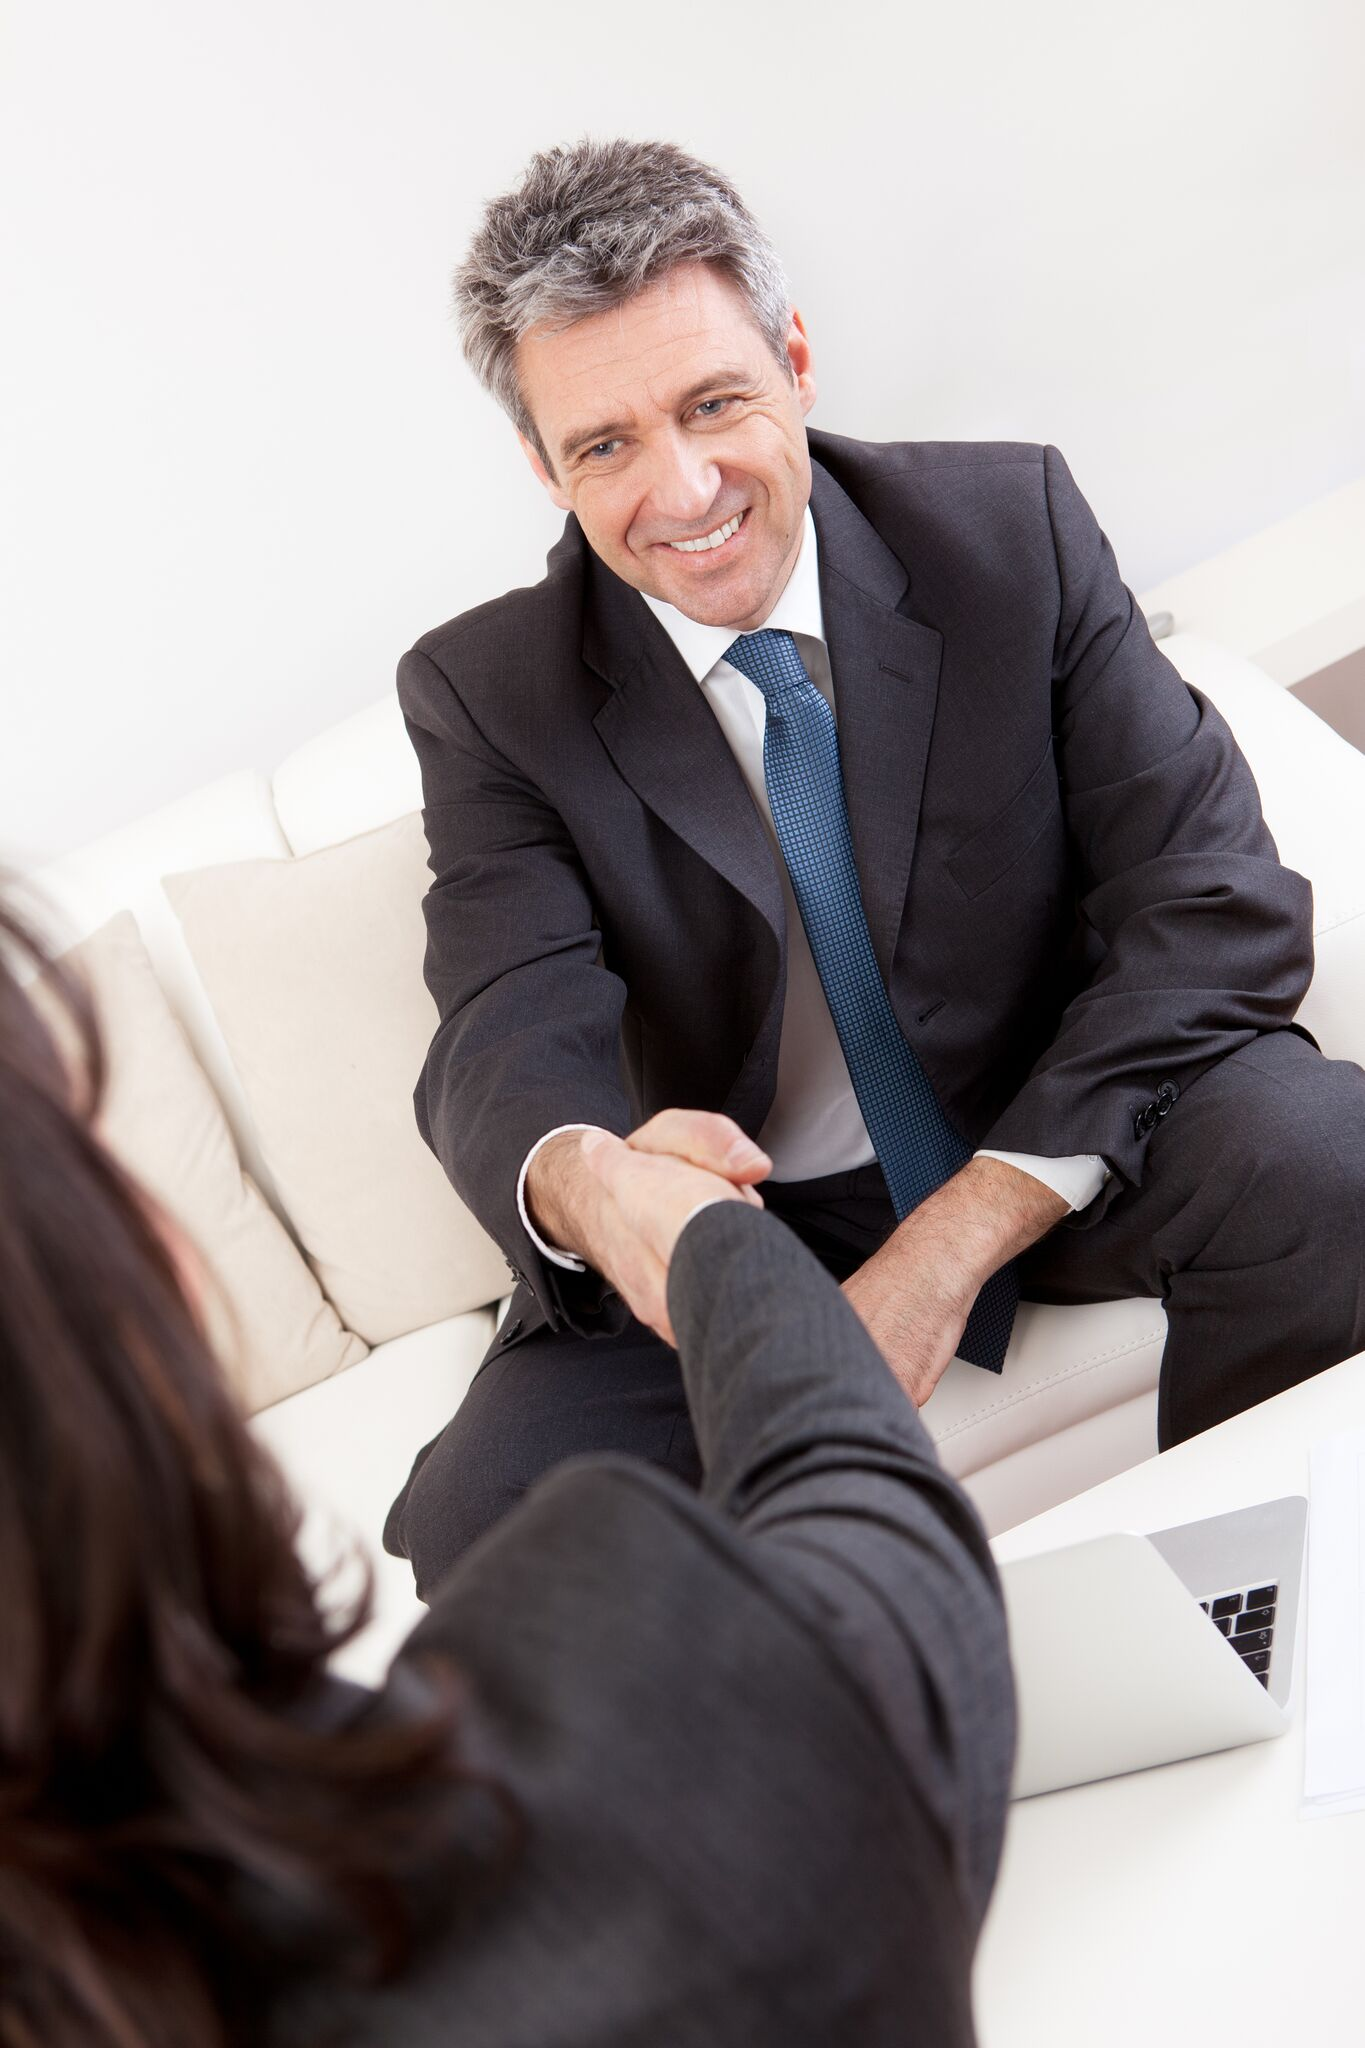 Interview Follow-up - professionals shaking hands